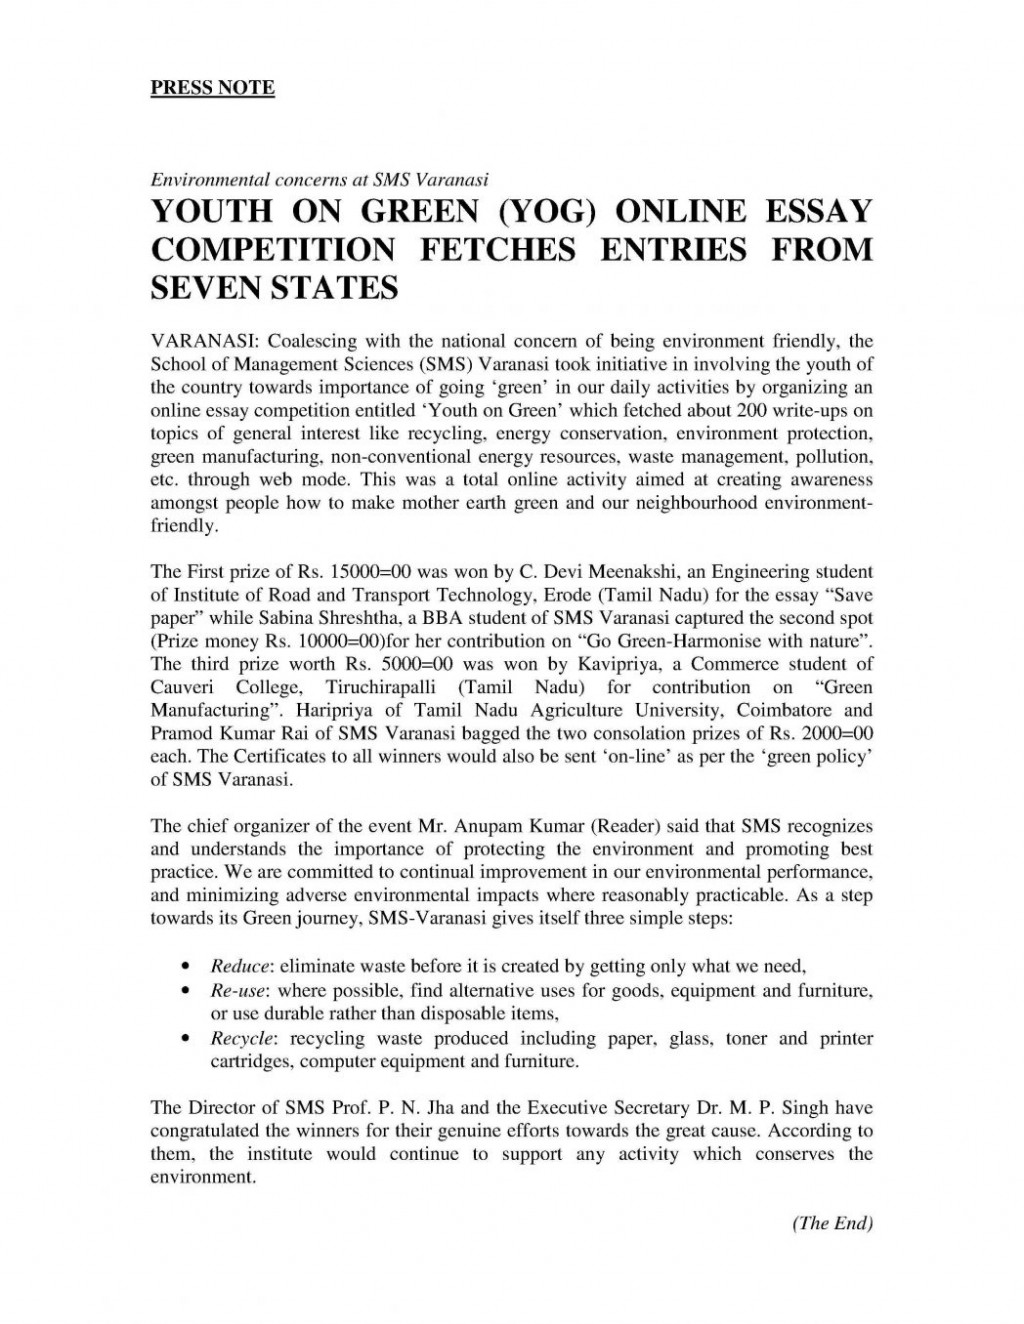 008 Healthy Food Essay Essays Eating Organizations Online Yog Press Re Block 1048x1356 Best Habits In Hindi Health English And Unhealthy Large